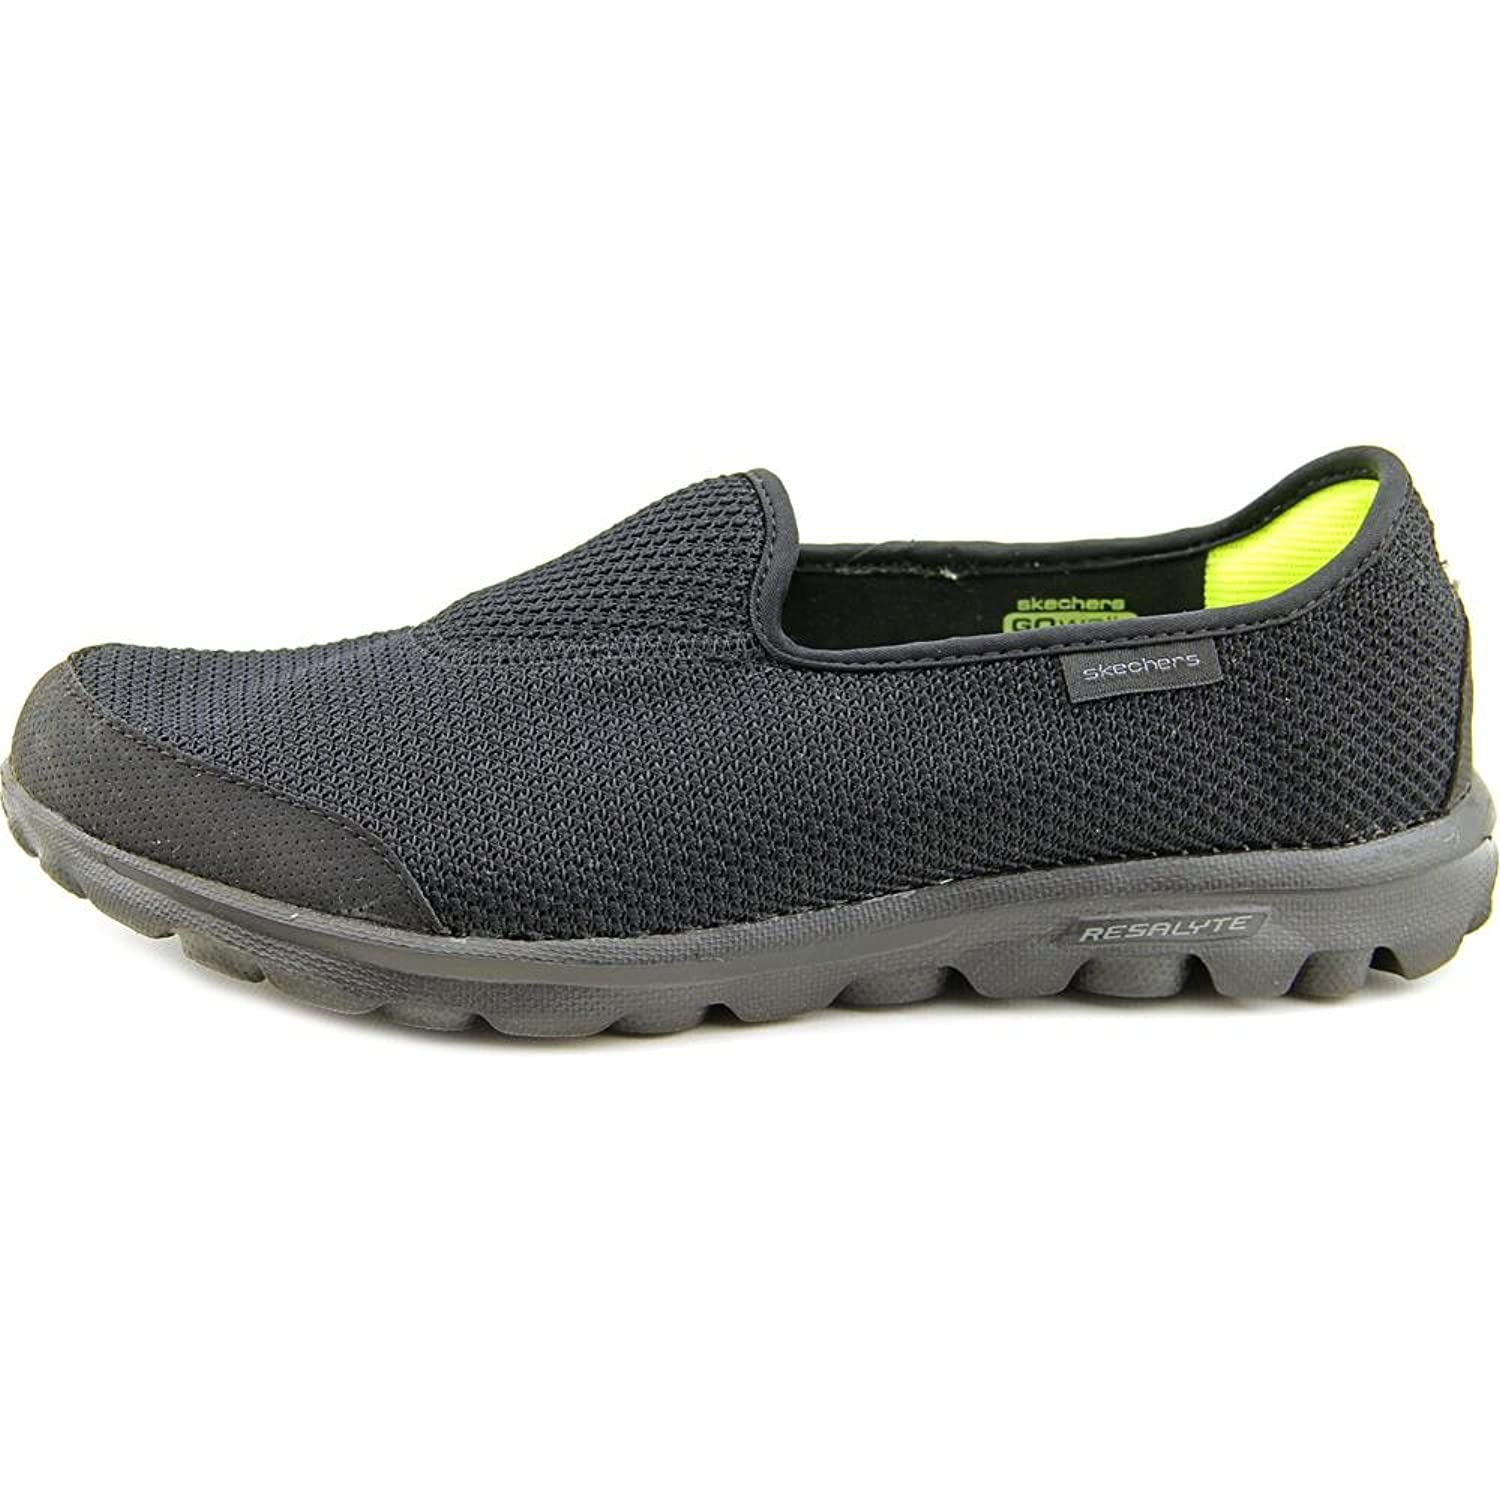 Skechers Ytelse Kvinner Gå Tur Rival Slip-on Walking Sko oxfvE4COjE